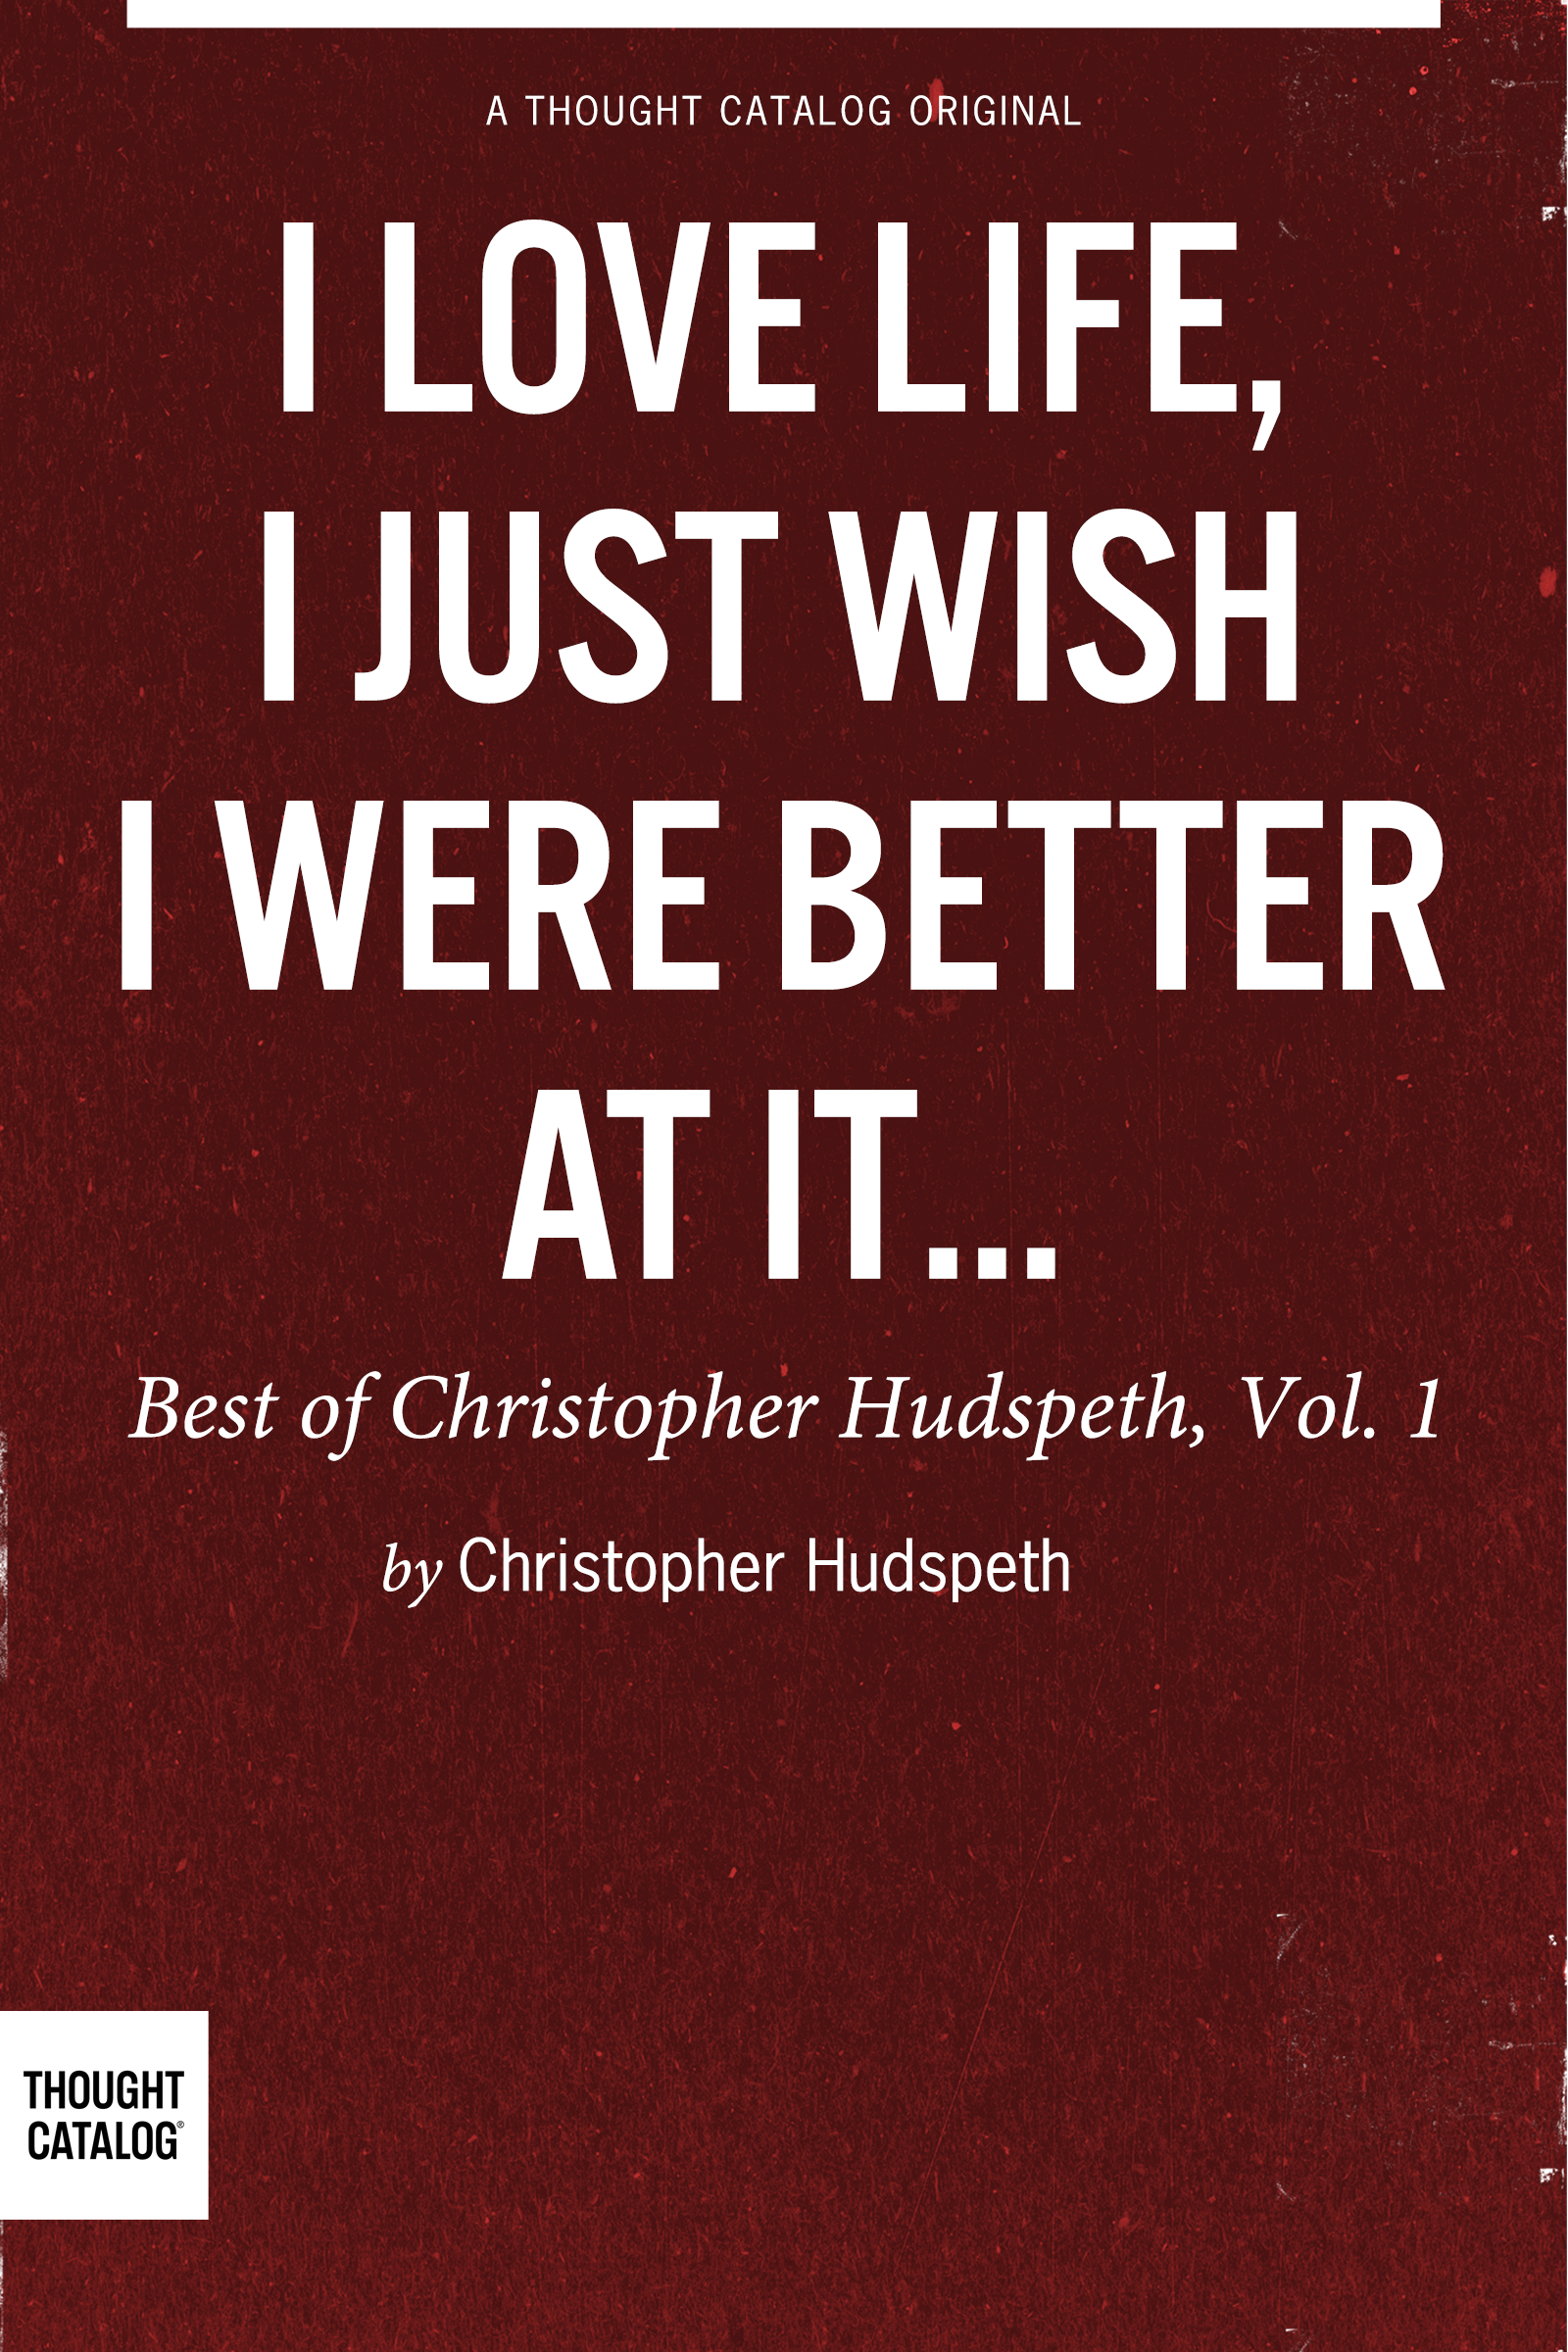 "Buy ""I Love Life, I Just Wish I Were Better At It: Best Of Christopher Hudpseth on Amazon, the iBookstore, and Vook (Outside the U.S.)"